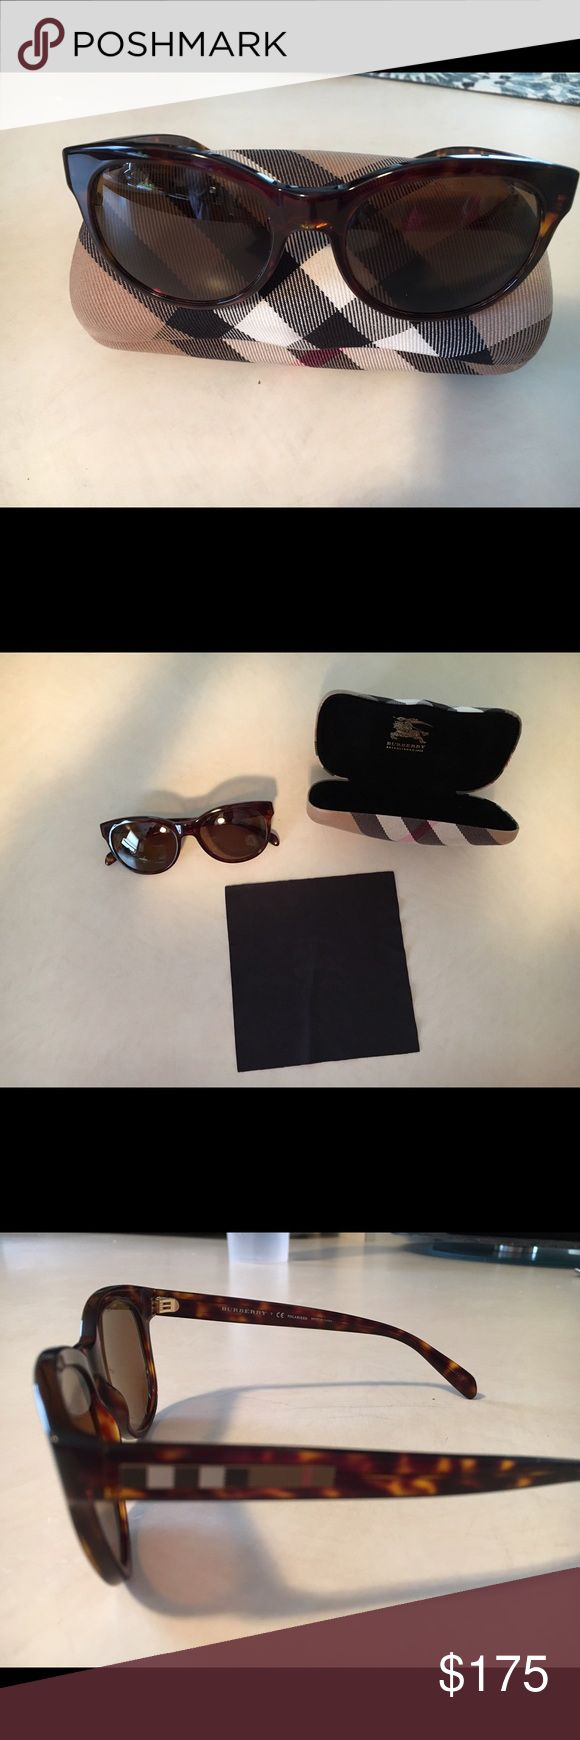 Burberry polarized sunglasses Burberry polarized sunglasses with case and cleaning cloth. Brown tortoise color. Brand new condition. Burberry Accessories Sunglasses